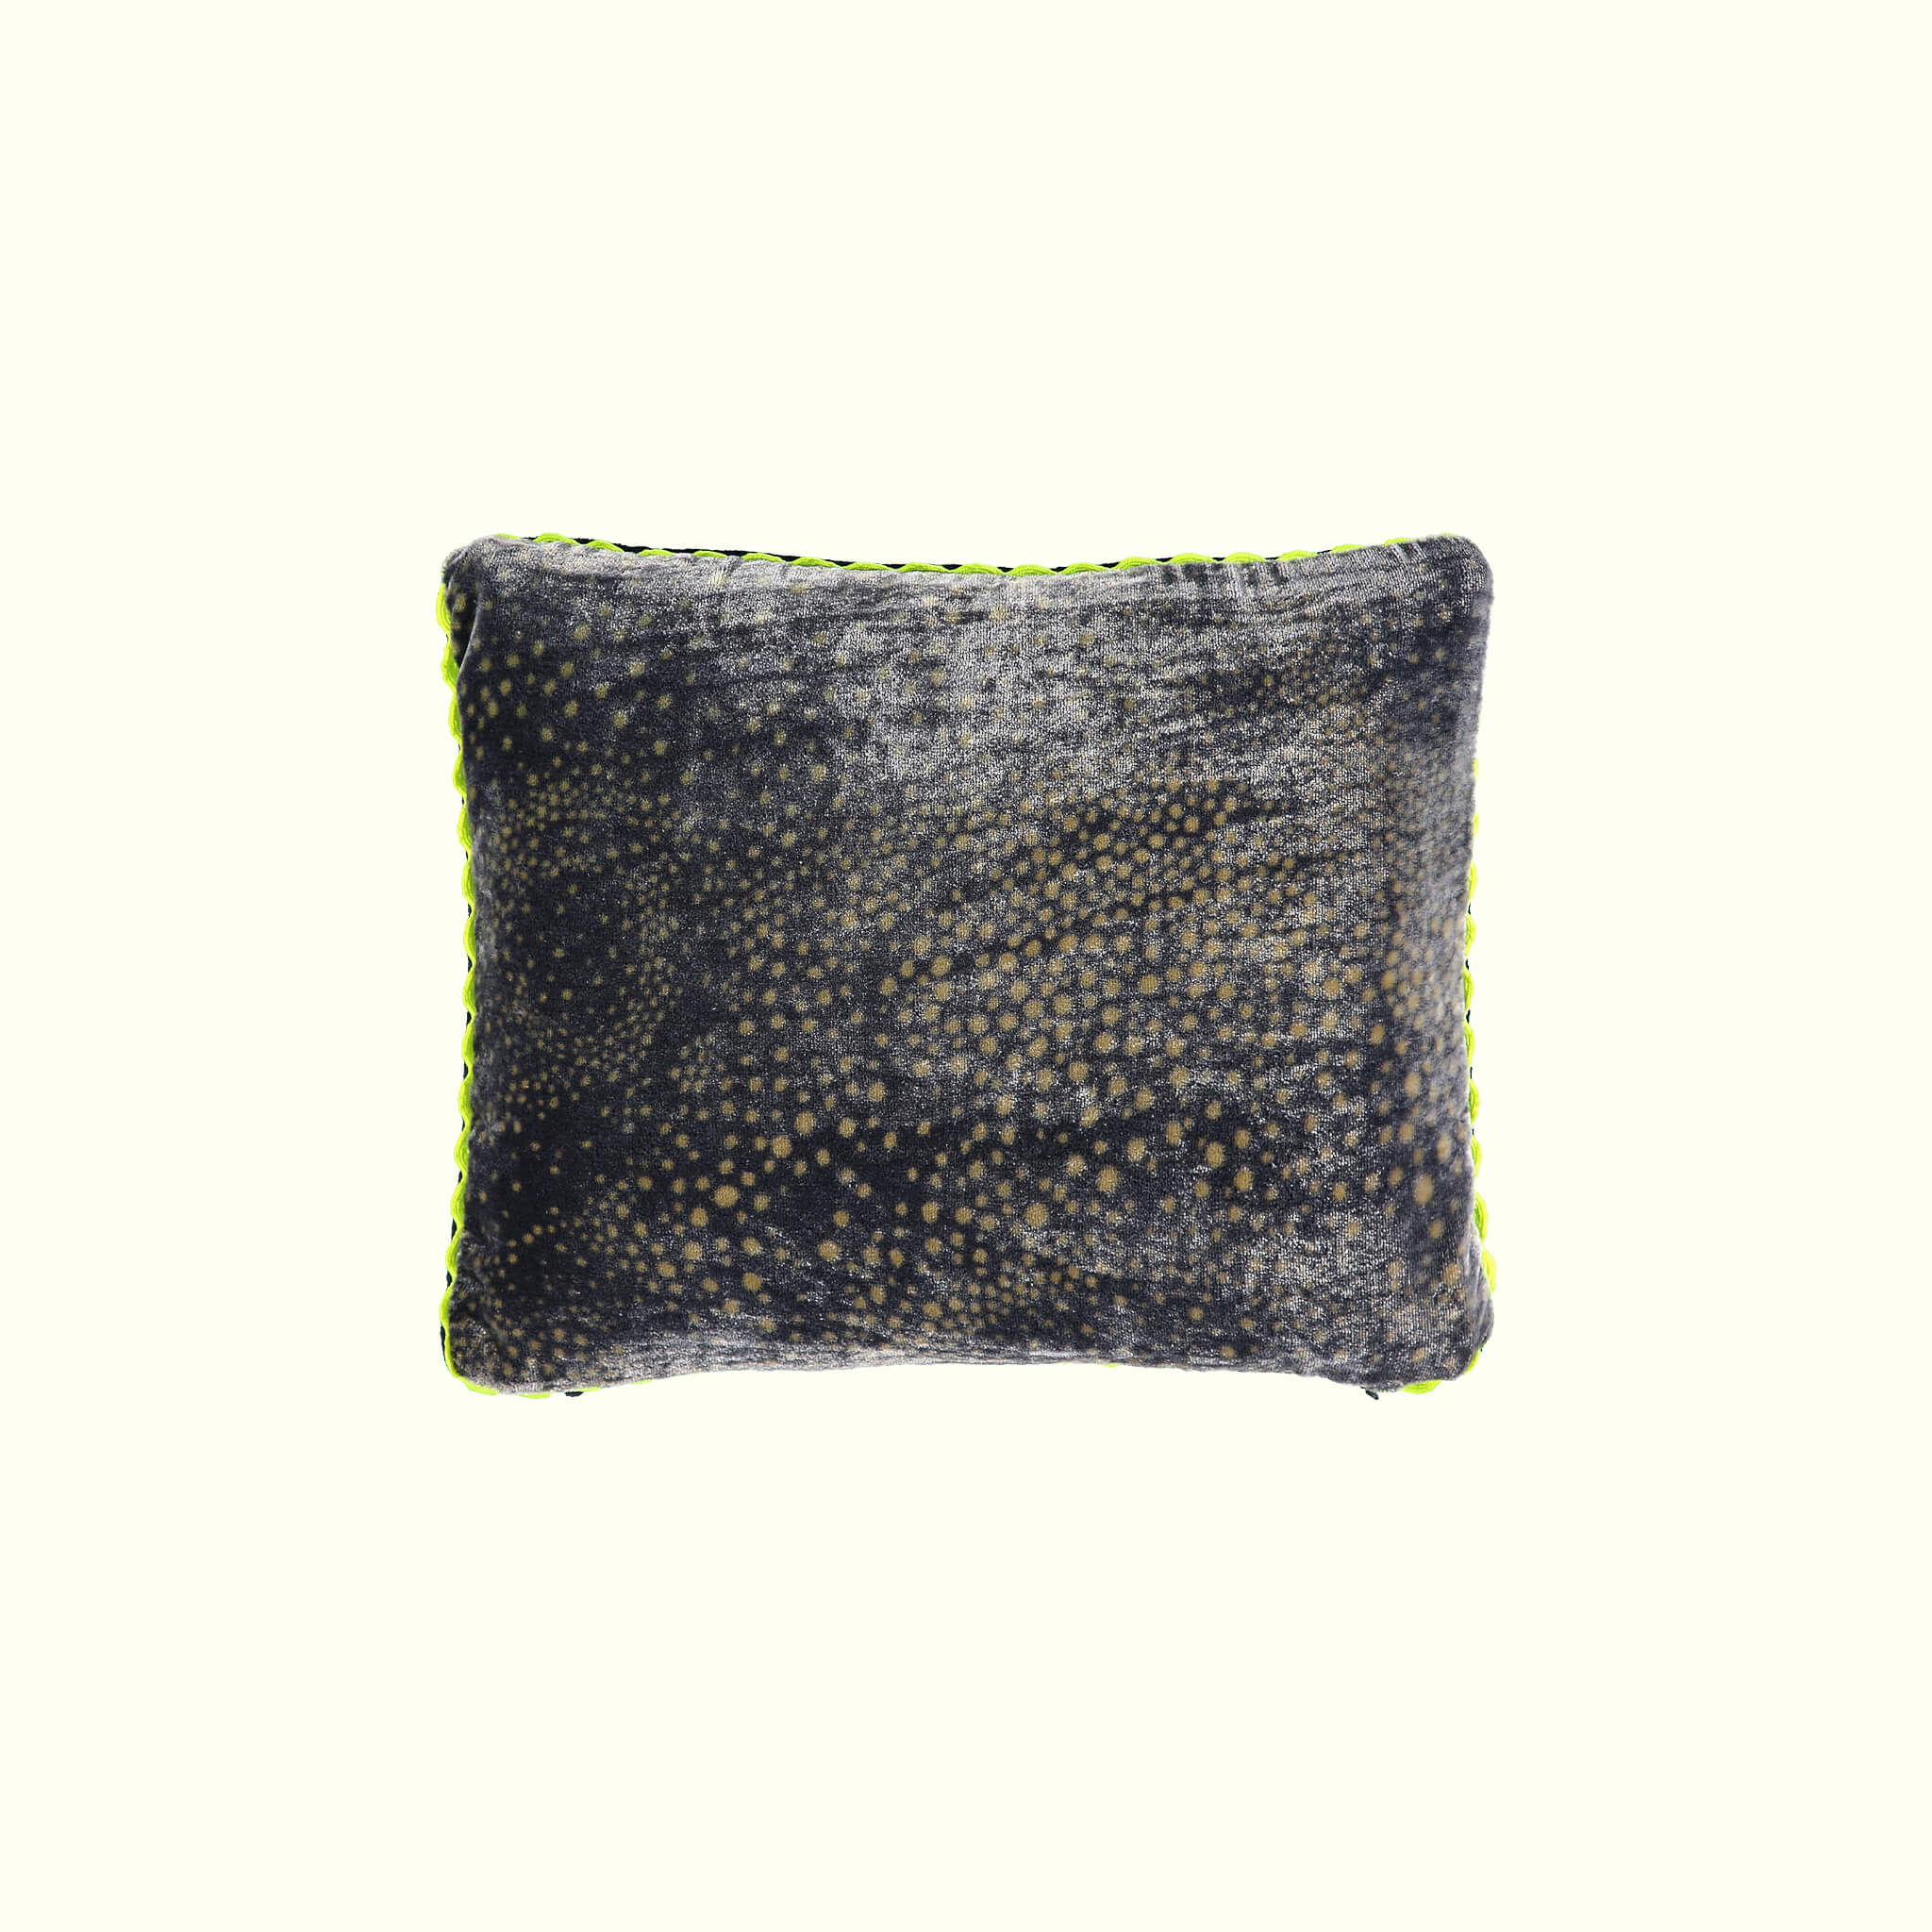 A luxury British silk velvet travel pillow by GVE in navy and gold Aurora print design.